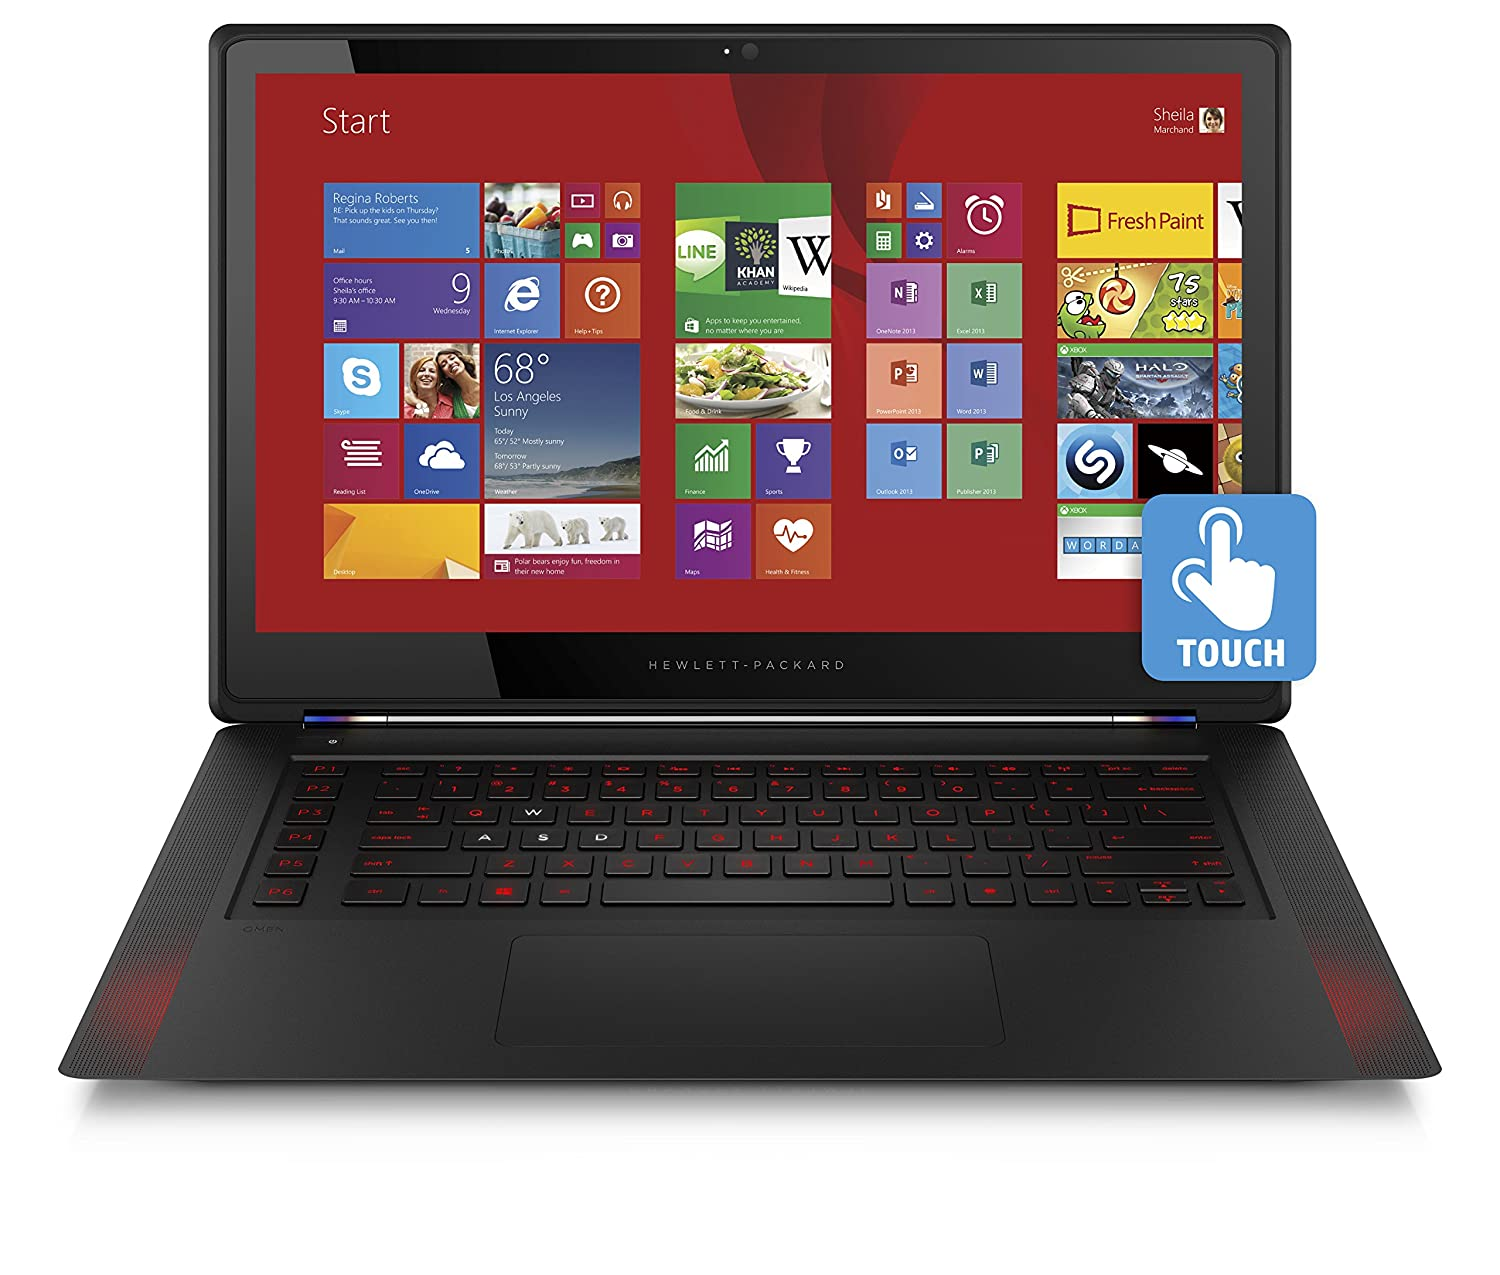 hp thin gaming laptop